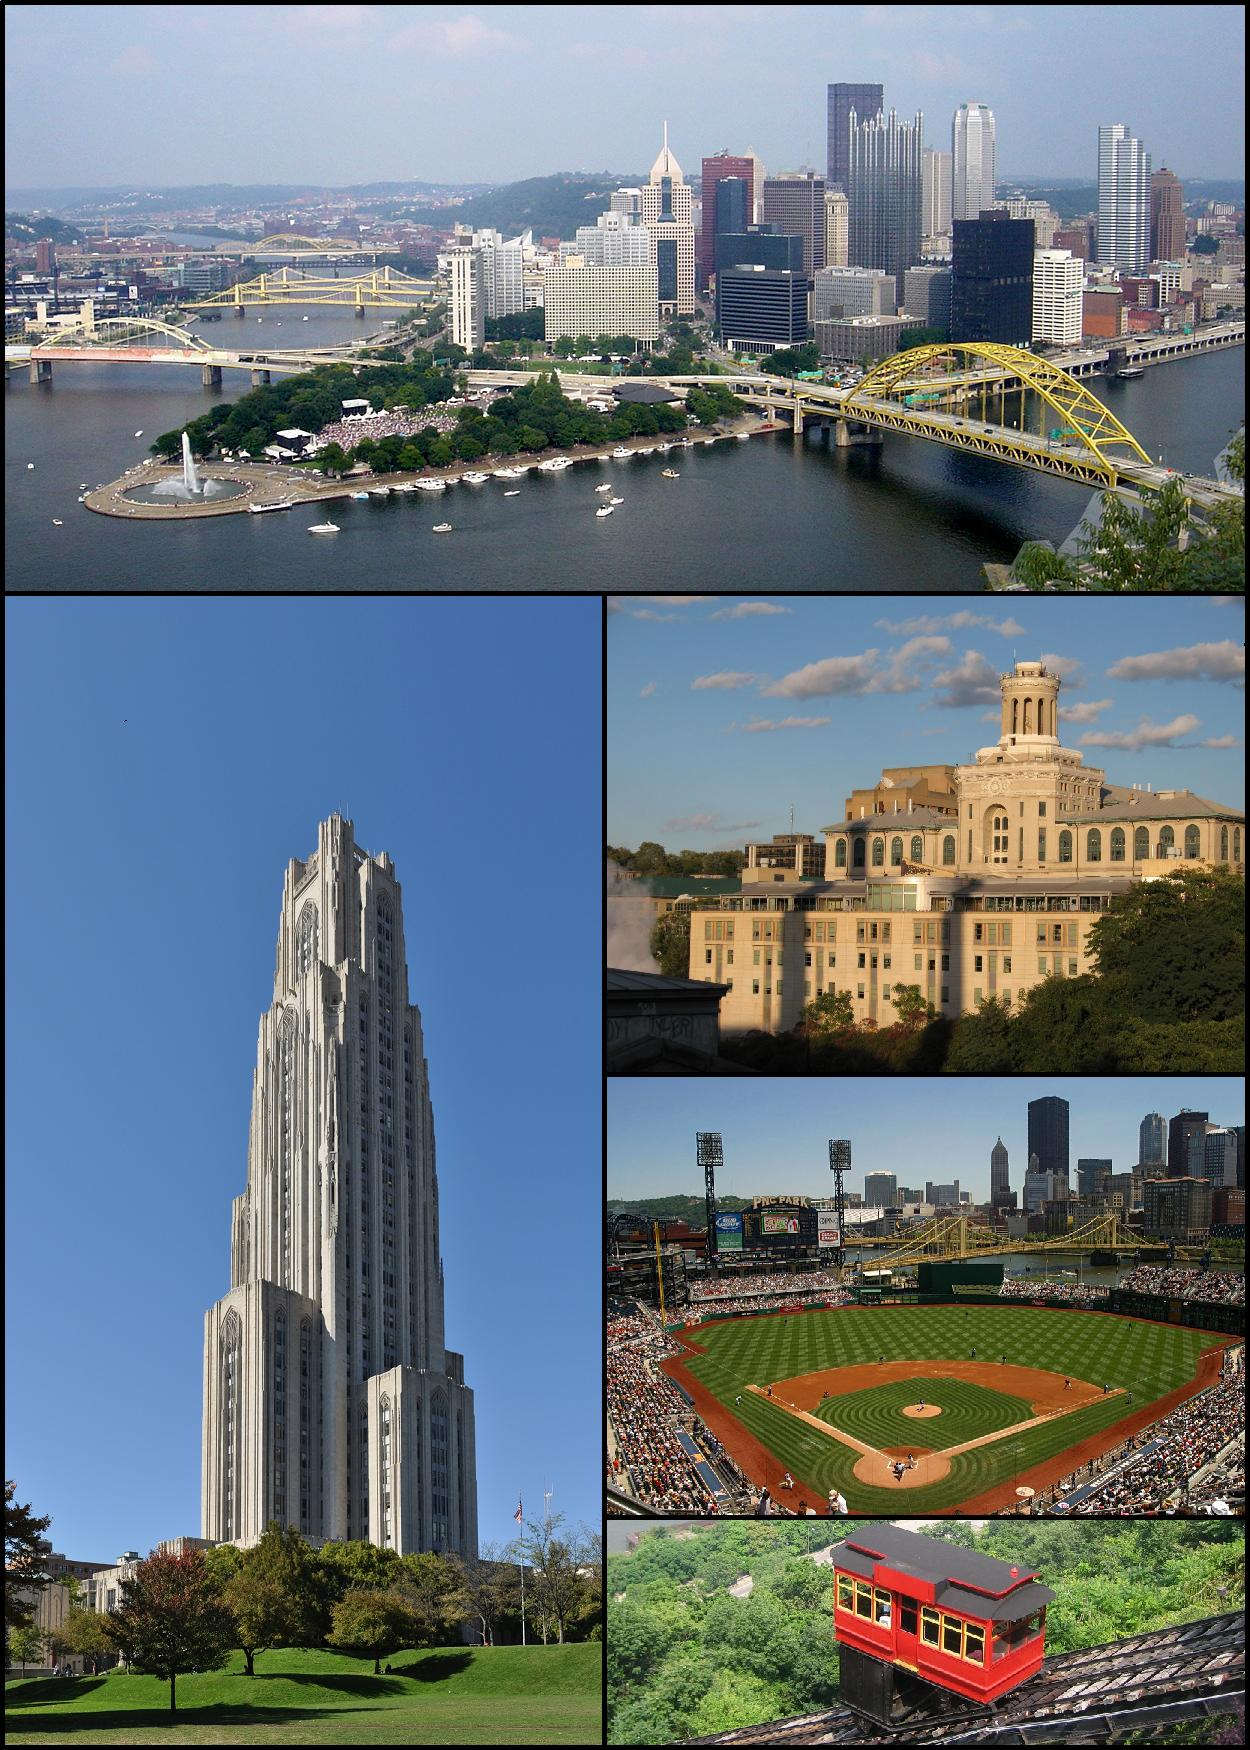 Depiction of Pittsburgh